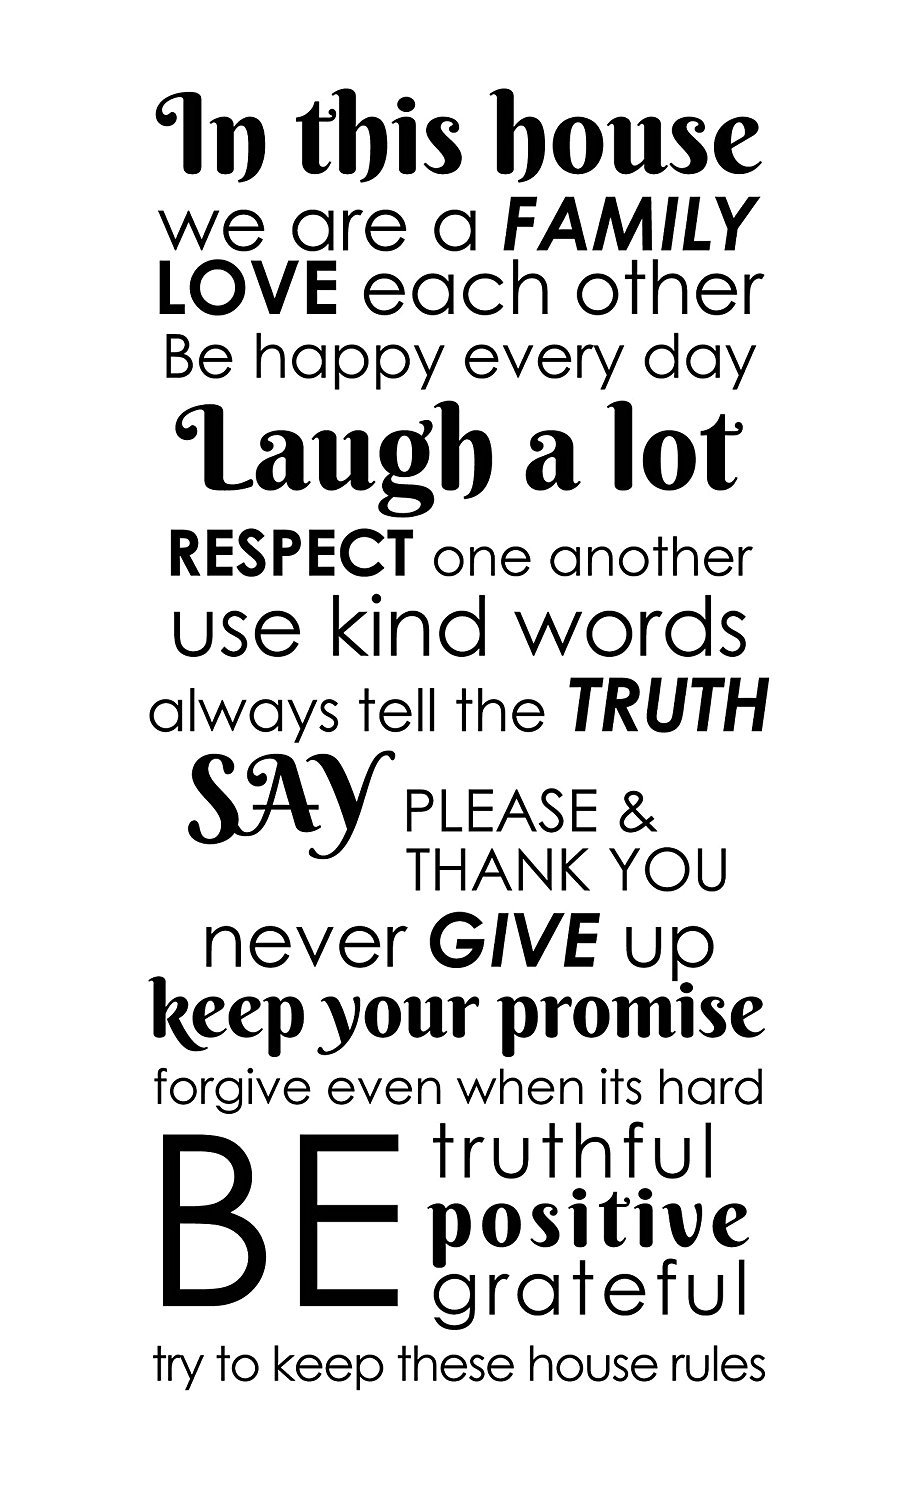 In this house we are a family, love each other, be happy every day, laugh a lot, respect one another, use kind words, always tell the truth. Removable vinyl Arts Wall Decor Decals Sticker mural